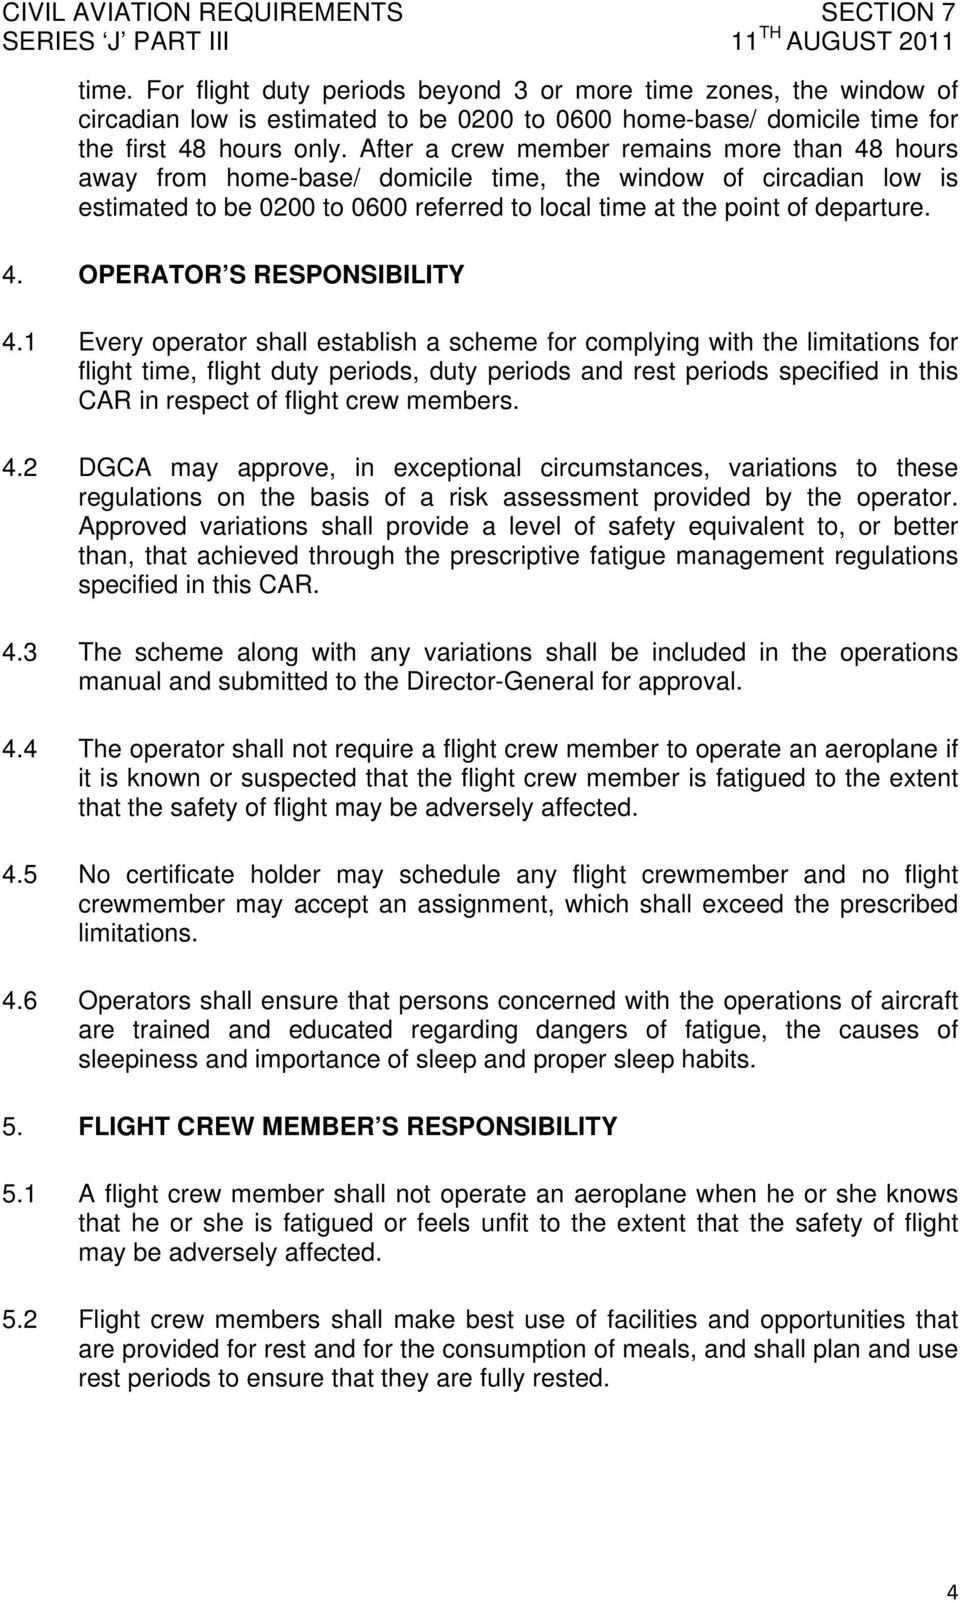 1 Every operator shall establish a scheme for complying with the limitations for flight time, flight duty periods, duty periods and rest periods specified in this CAR in respect of flight crew